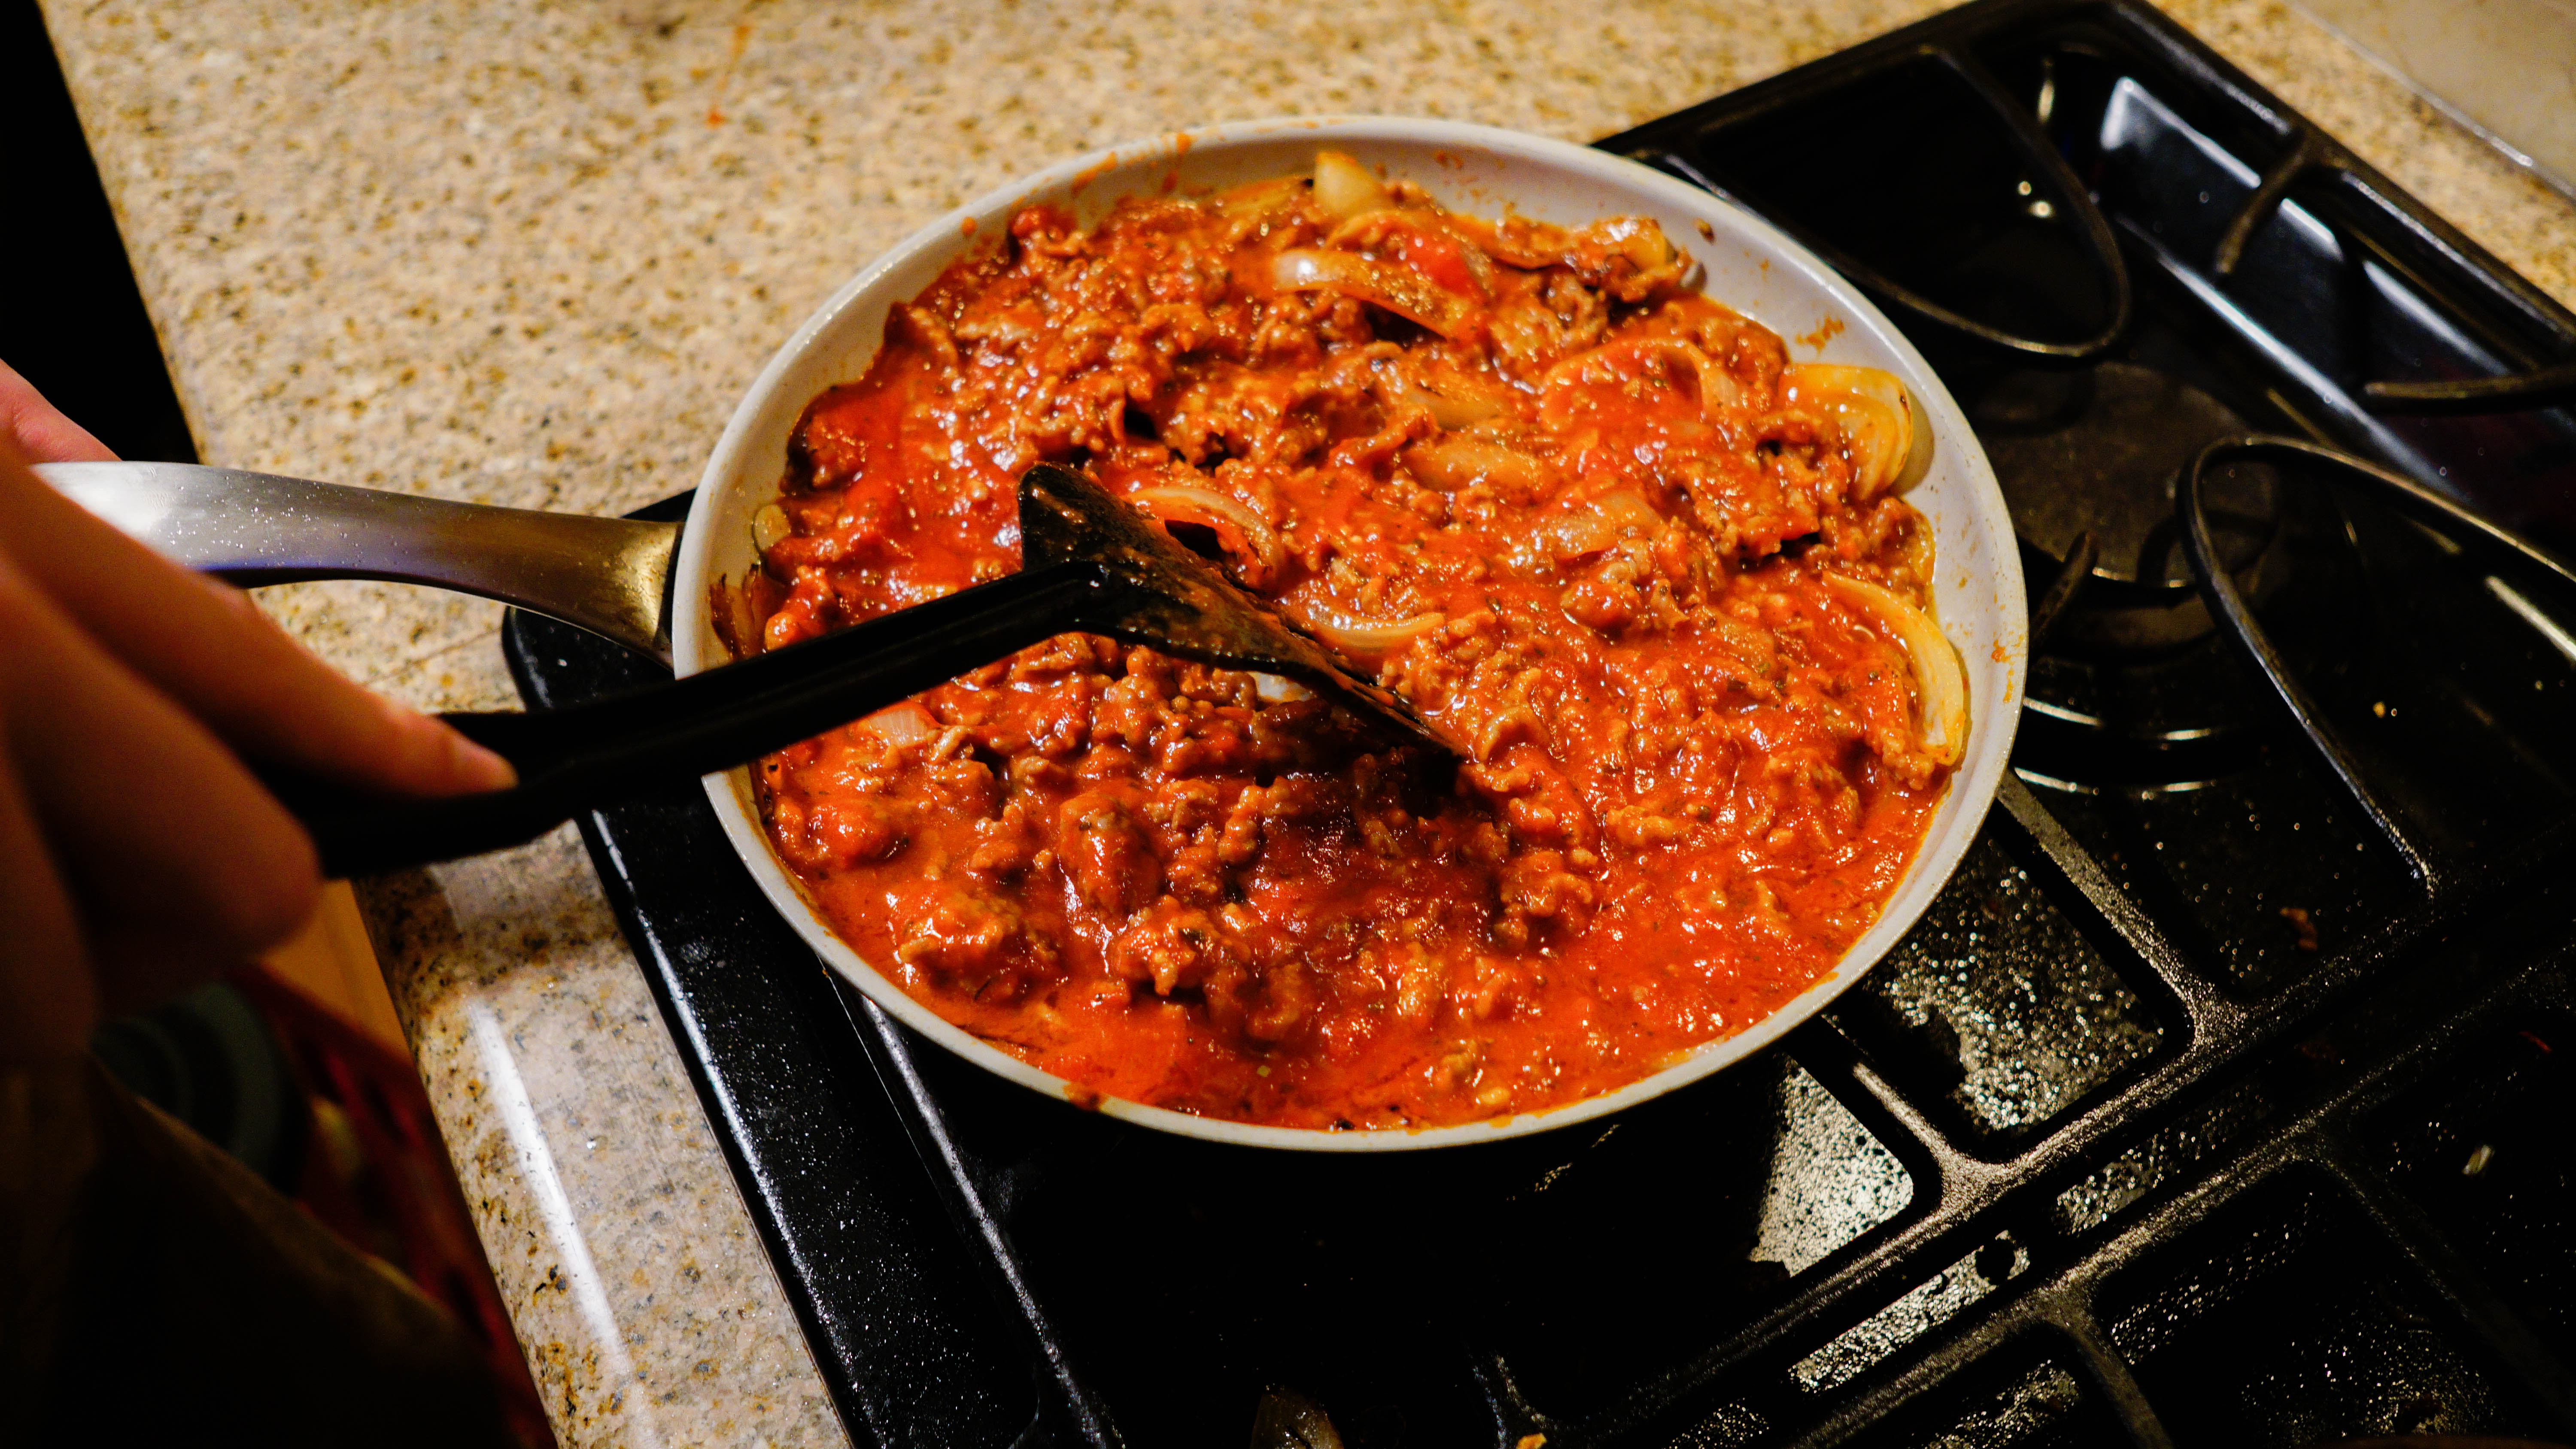 Picture of Tomato Sauce and Sausage Mixture